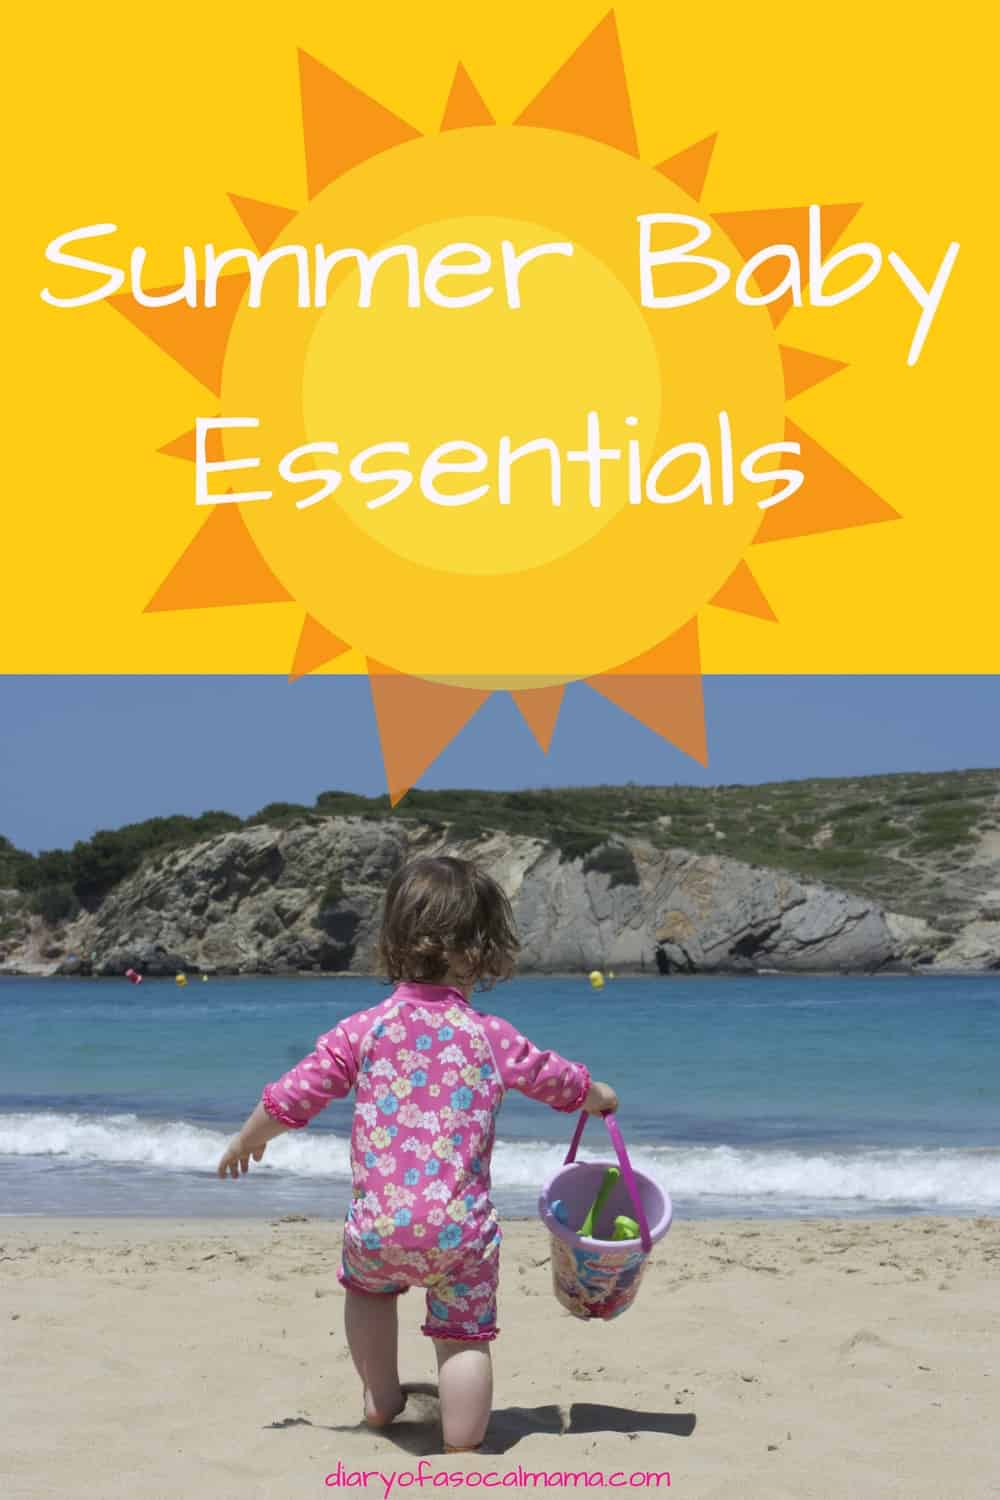 Everything you need to have a fun and safe summer with your baby.